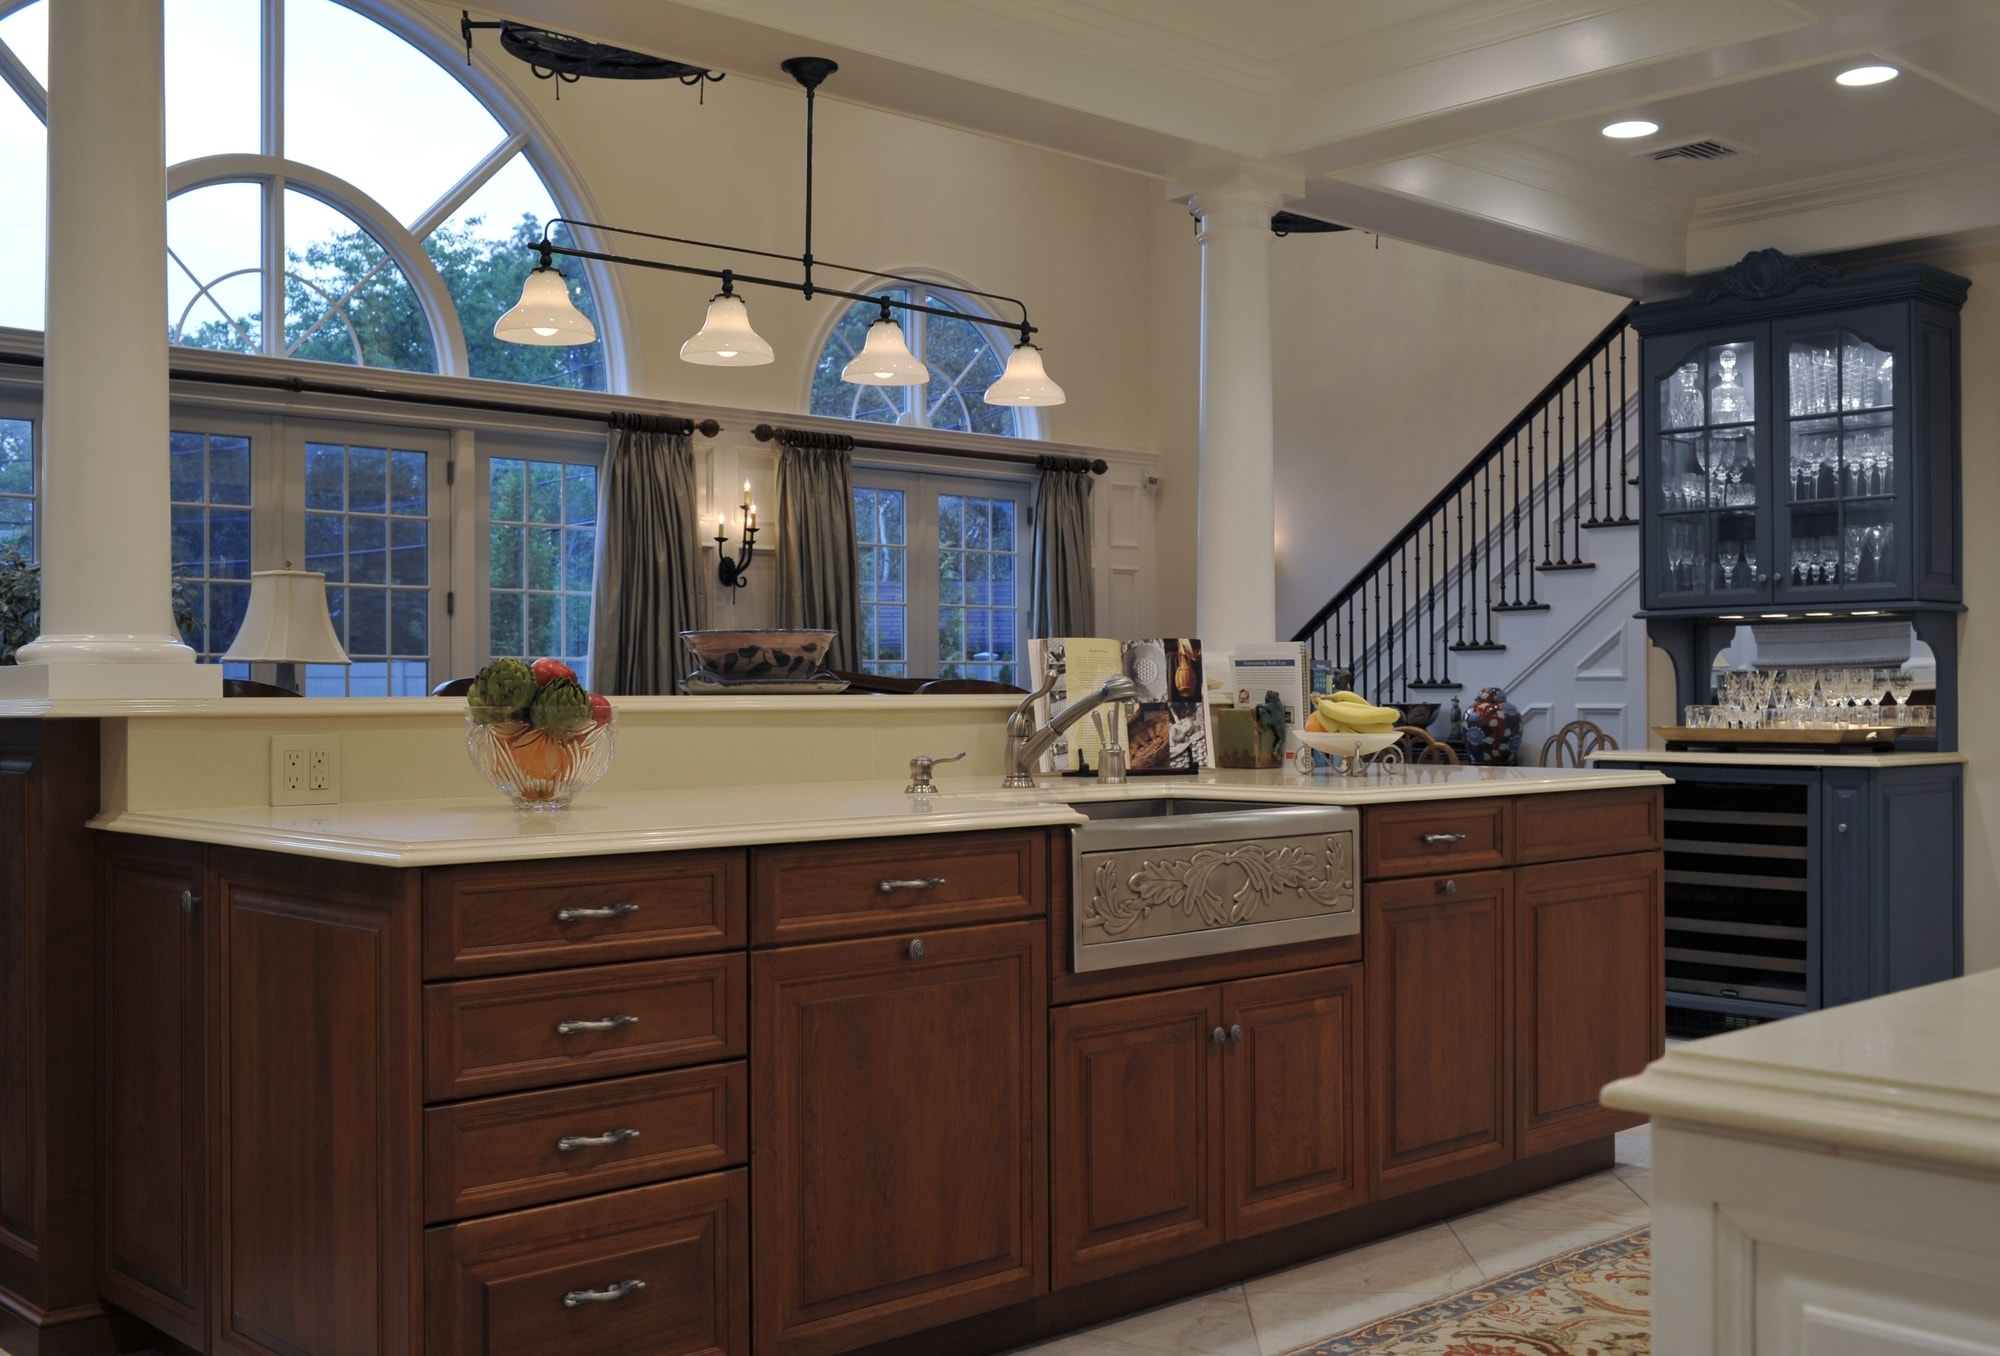 Traditional style kitchen with wine glass cabinet